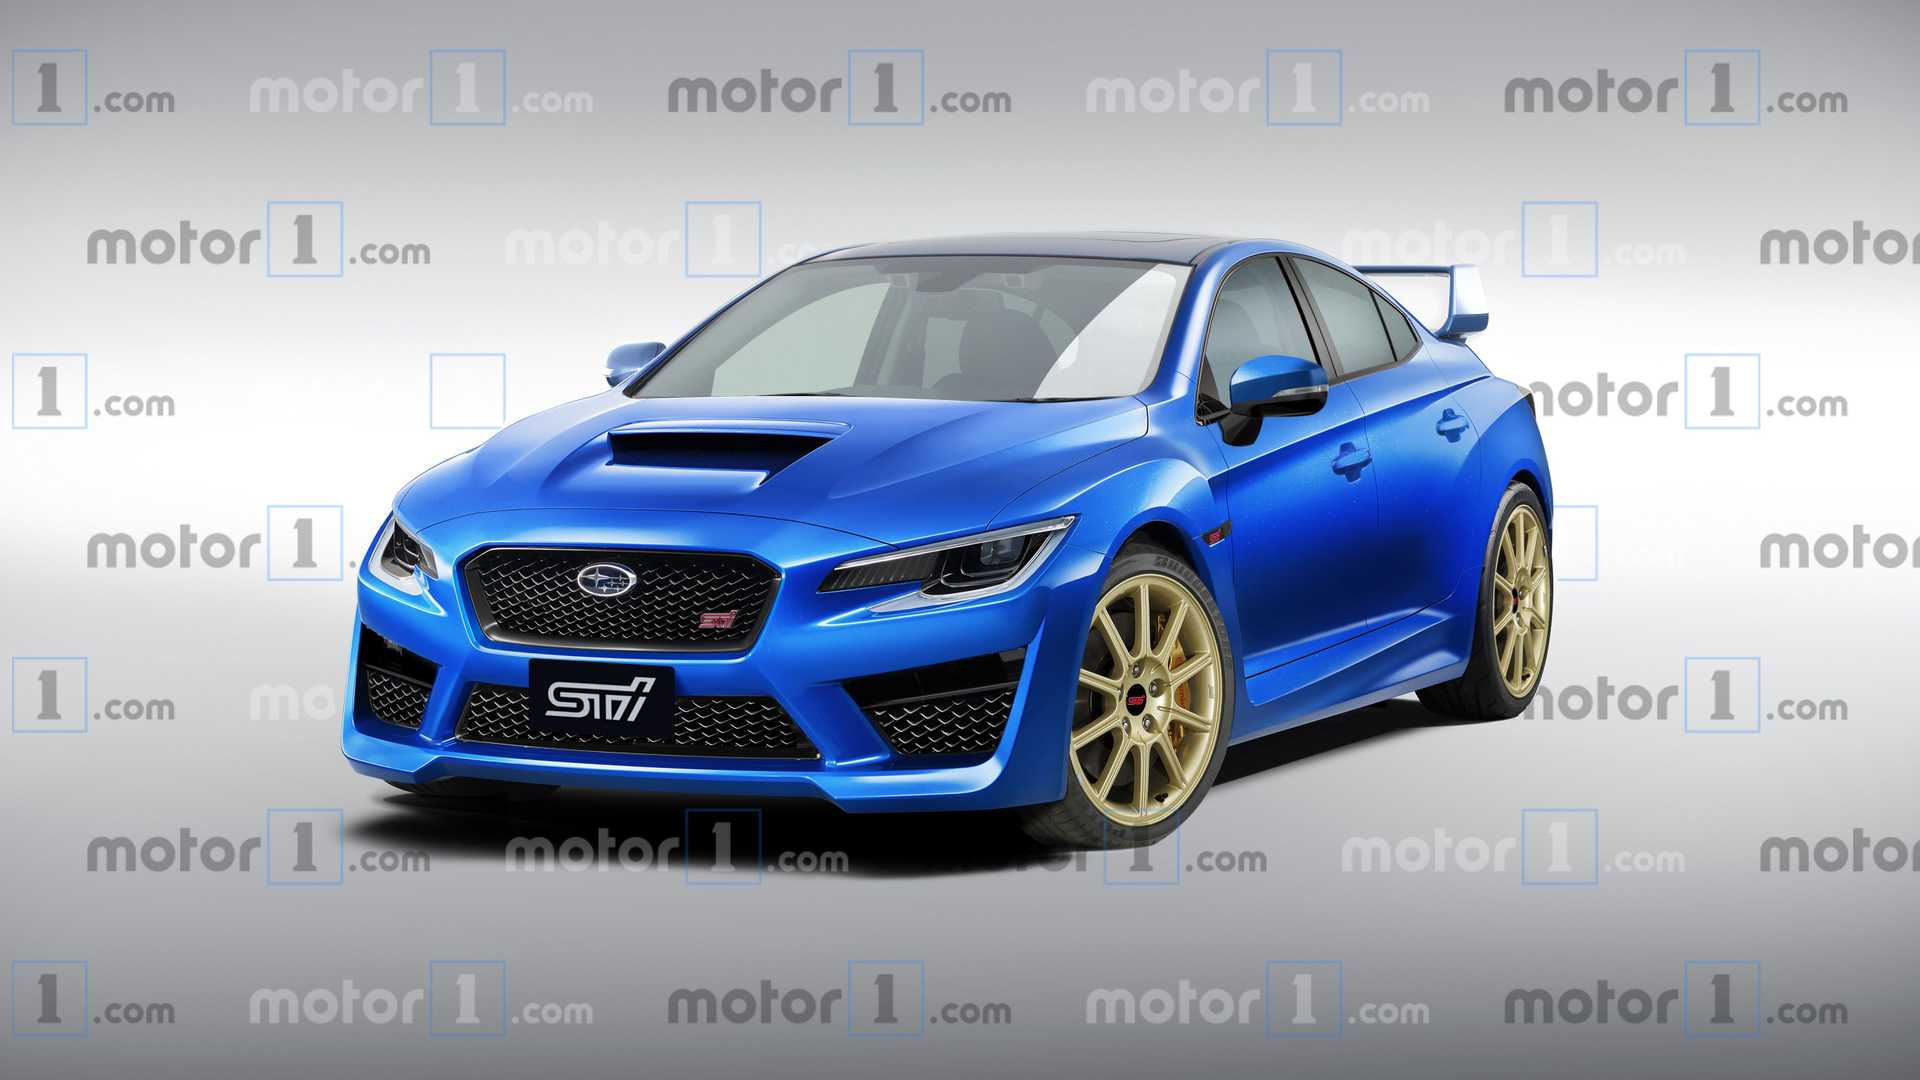 43 New Subaru My 2020 Price And Review